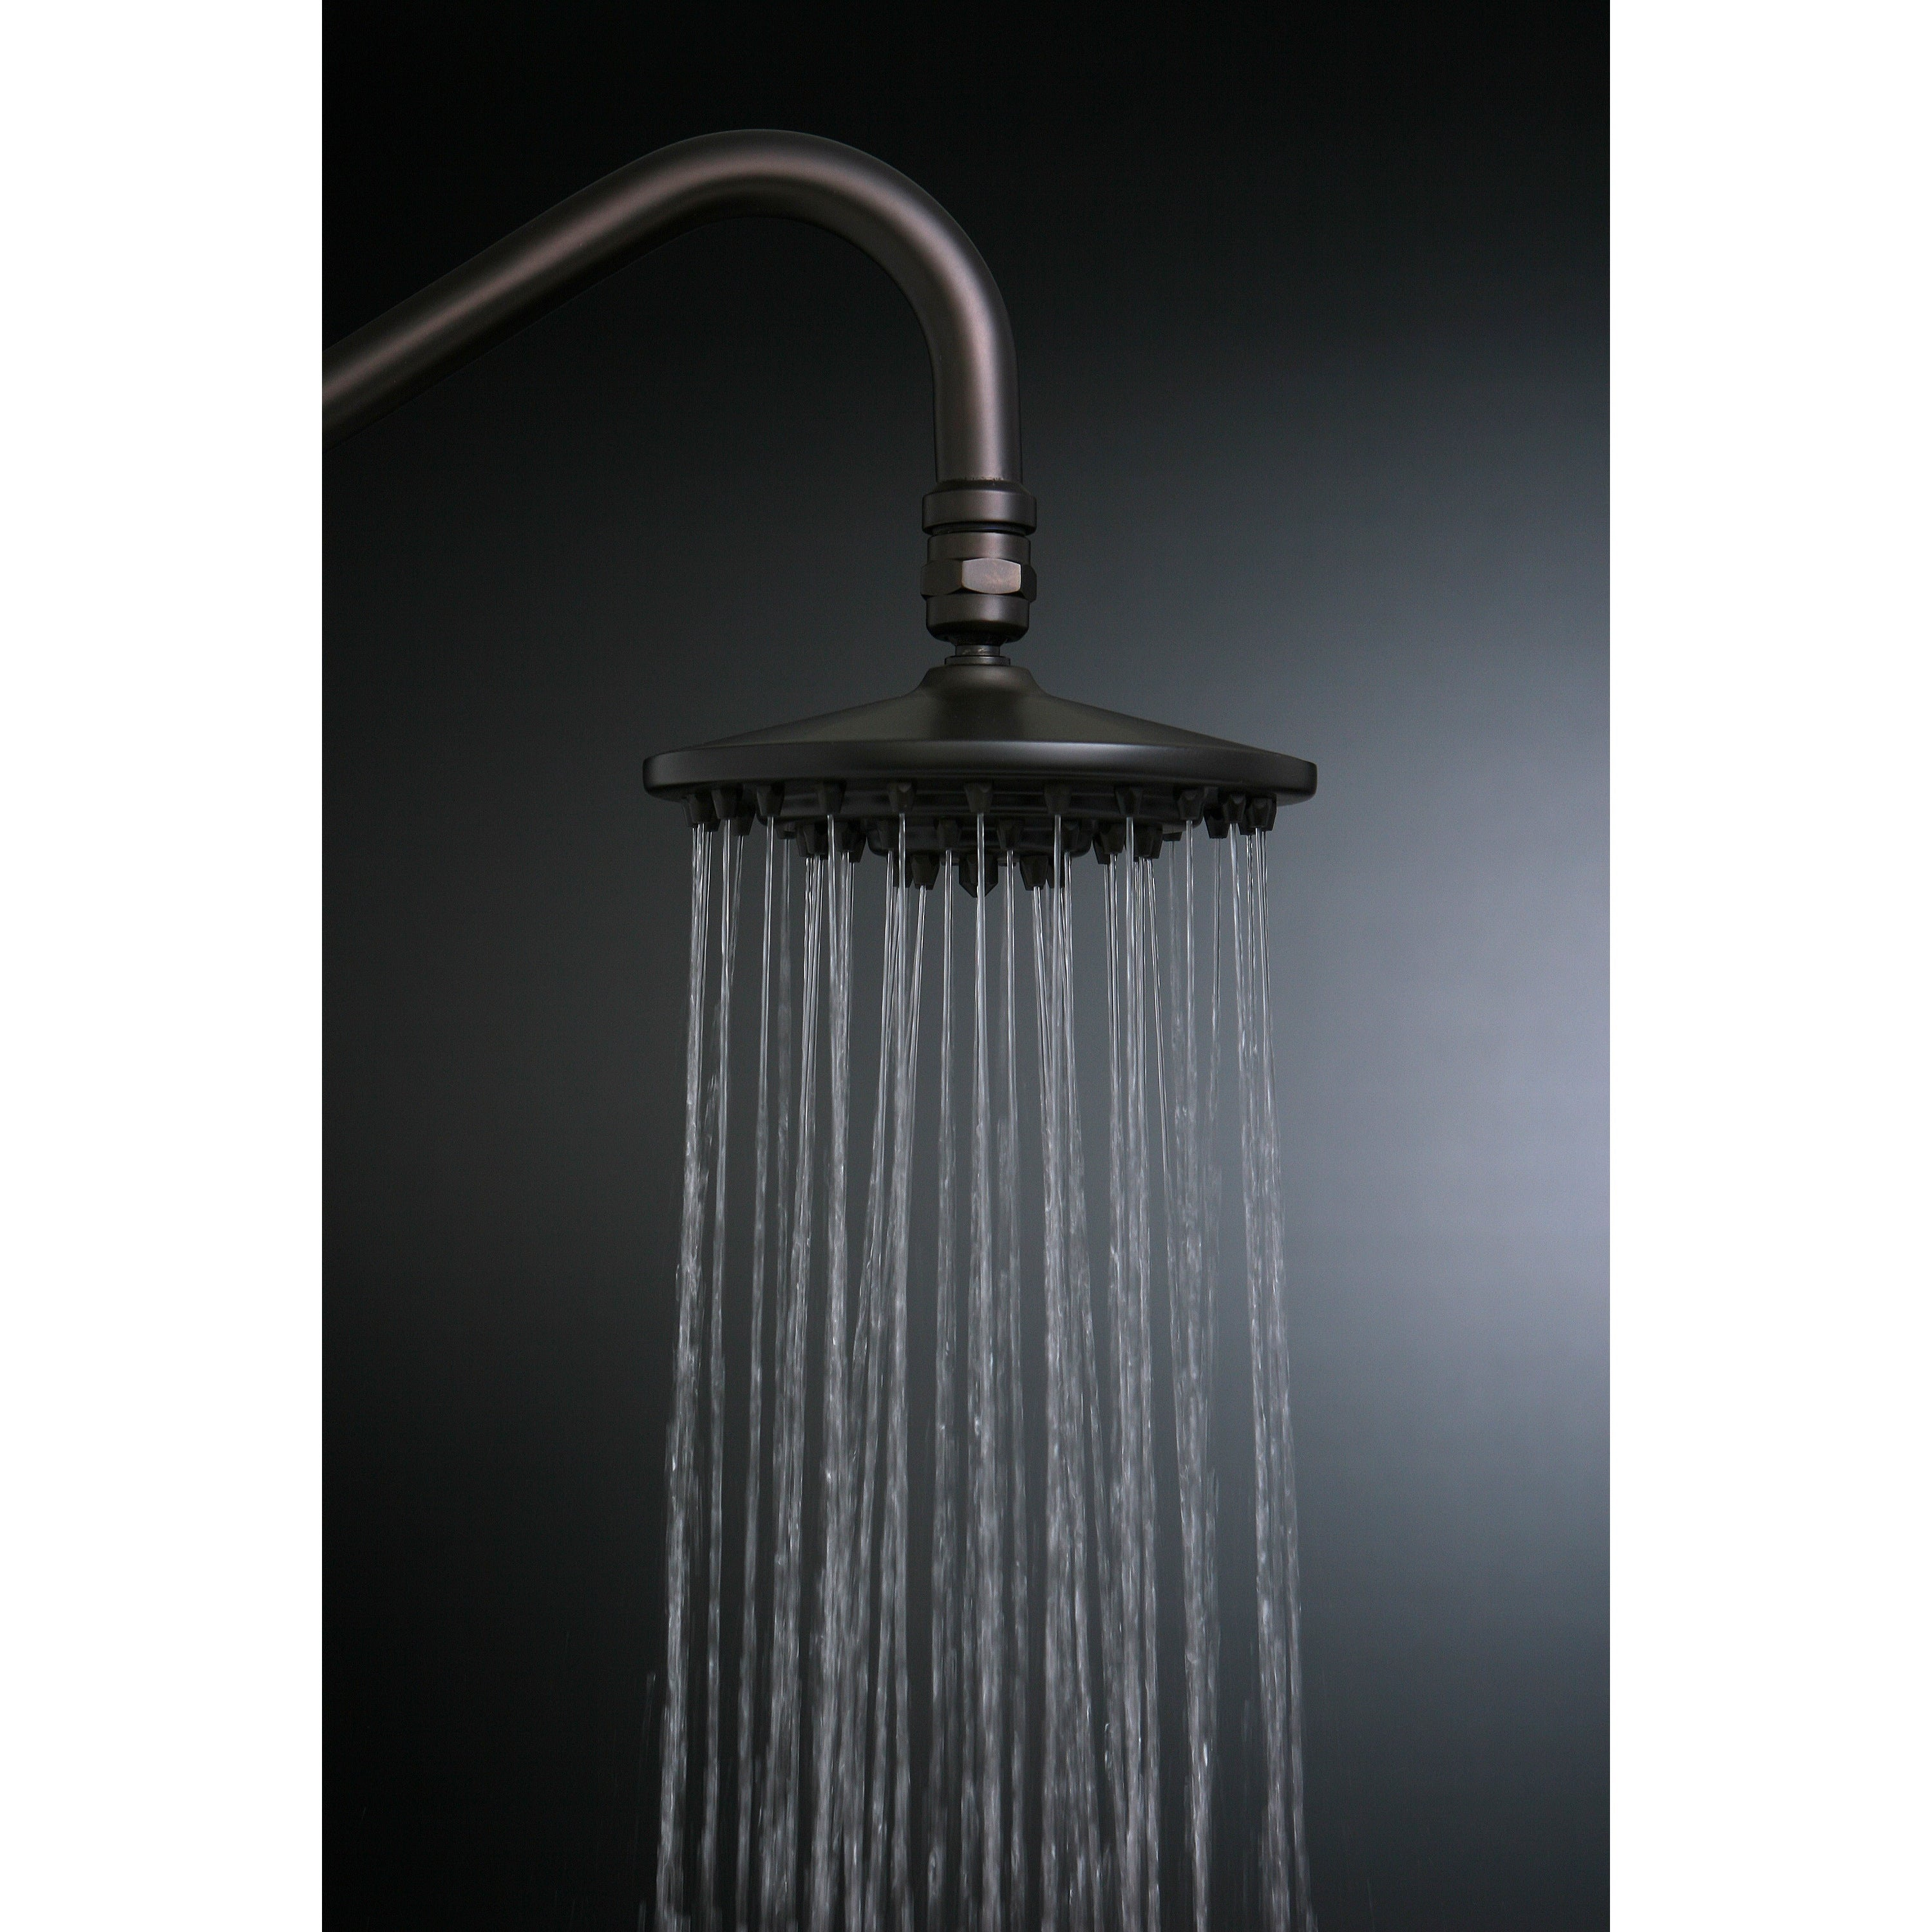 Rainfall Oil Rubbed Bronze 6 Inch Shower Head